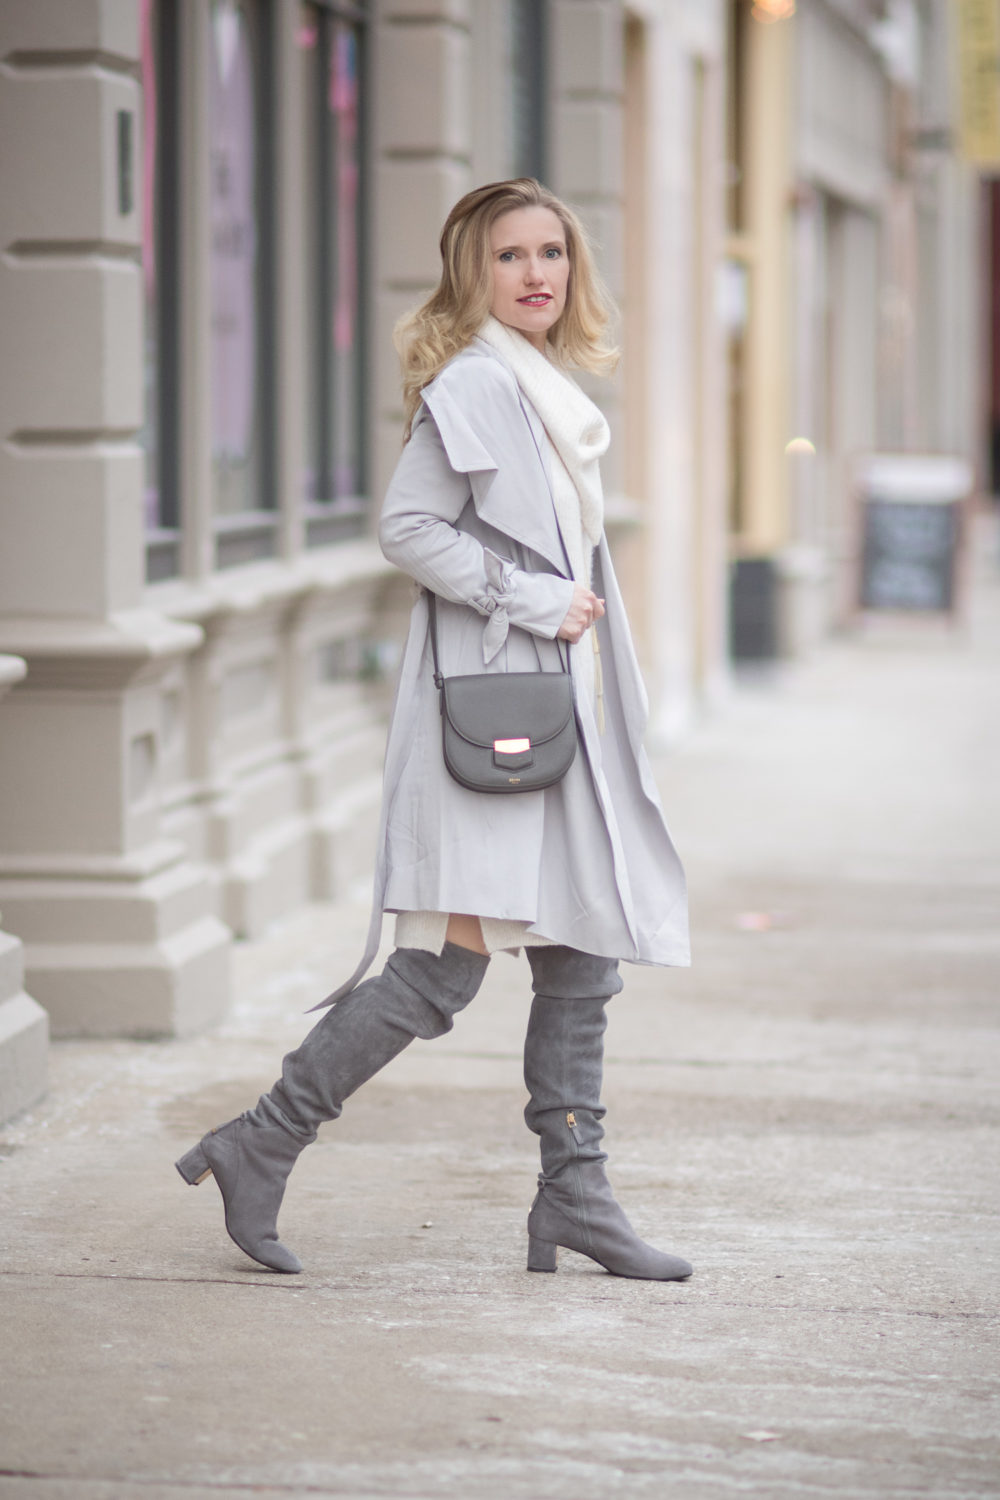 Petite Fashion and Style Blog | Fashion For Petite Women |Club Monaco Ellyn Trench | Miss Selfridge Cowl Neck Jumper | Tory Burch Laila OTK Boots | Lightweight spring jackets